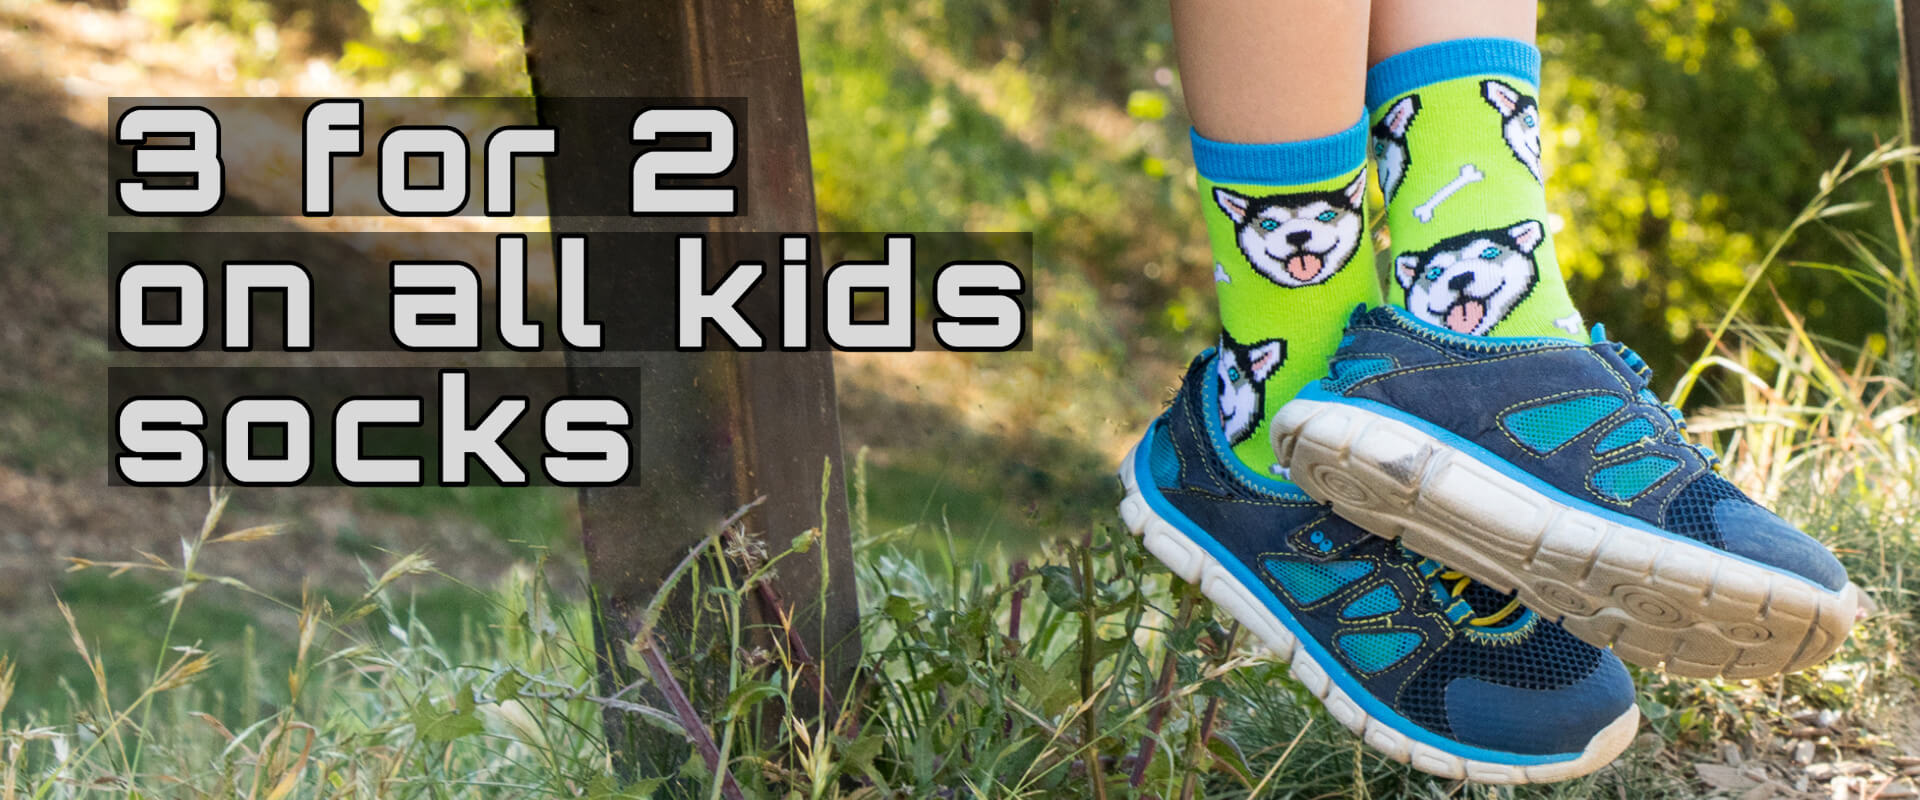 3 for 2 on kids socks